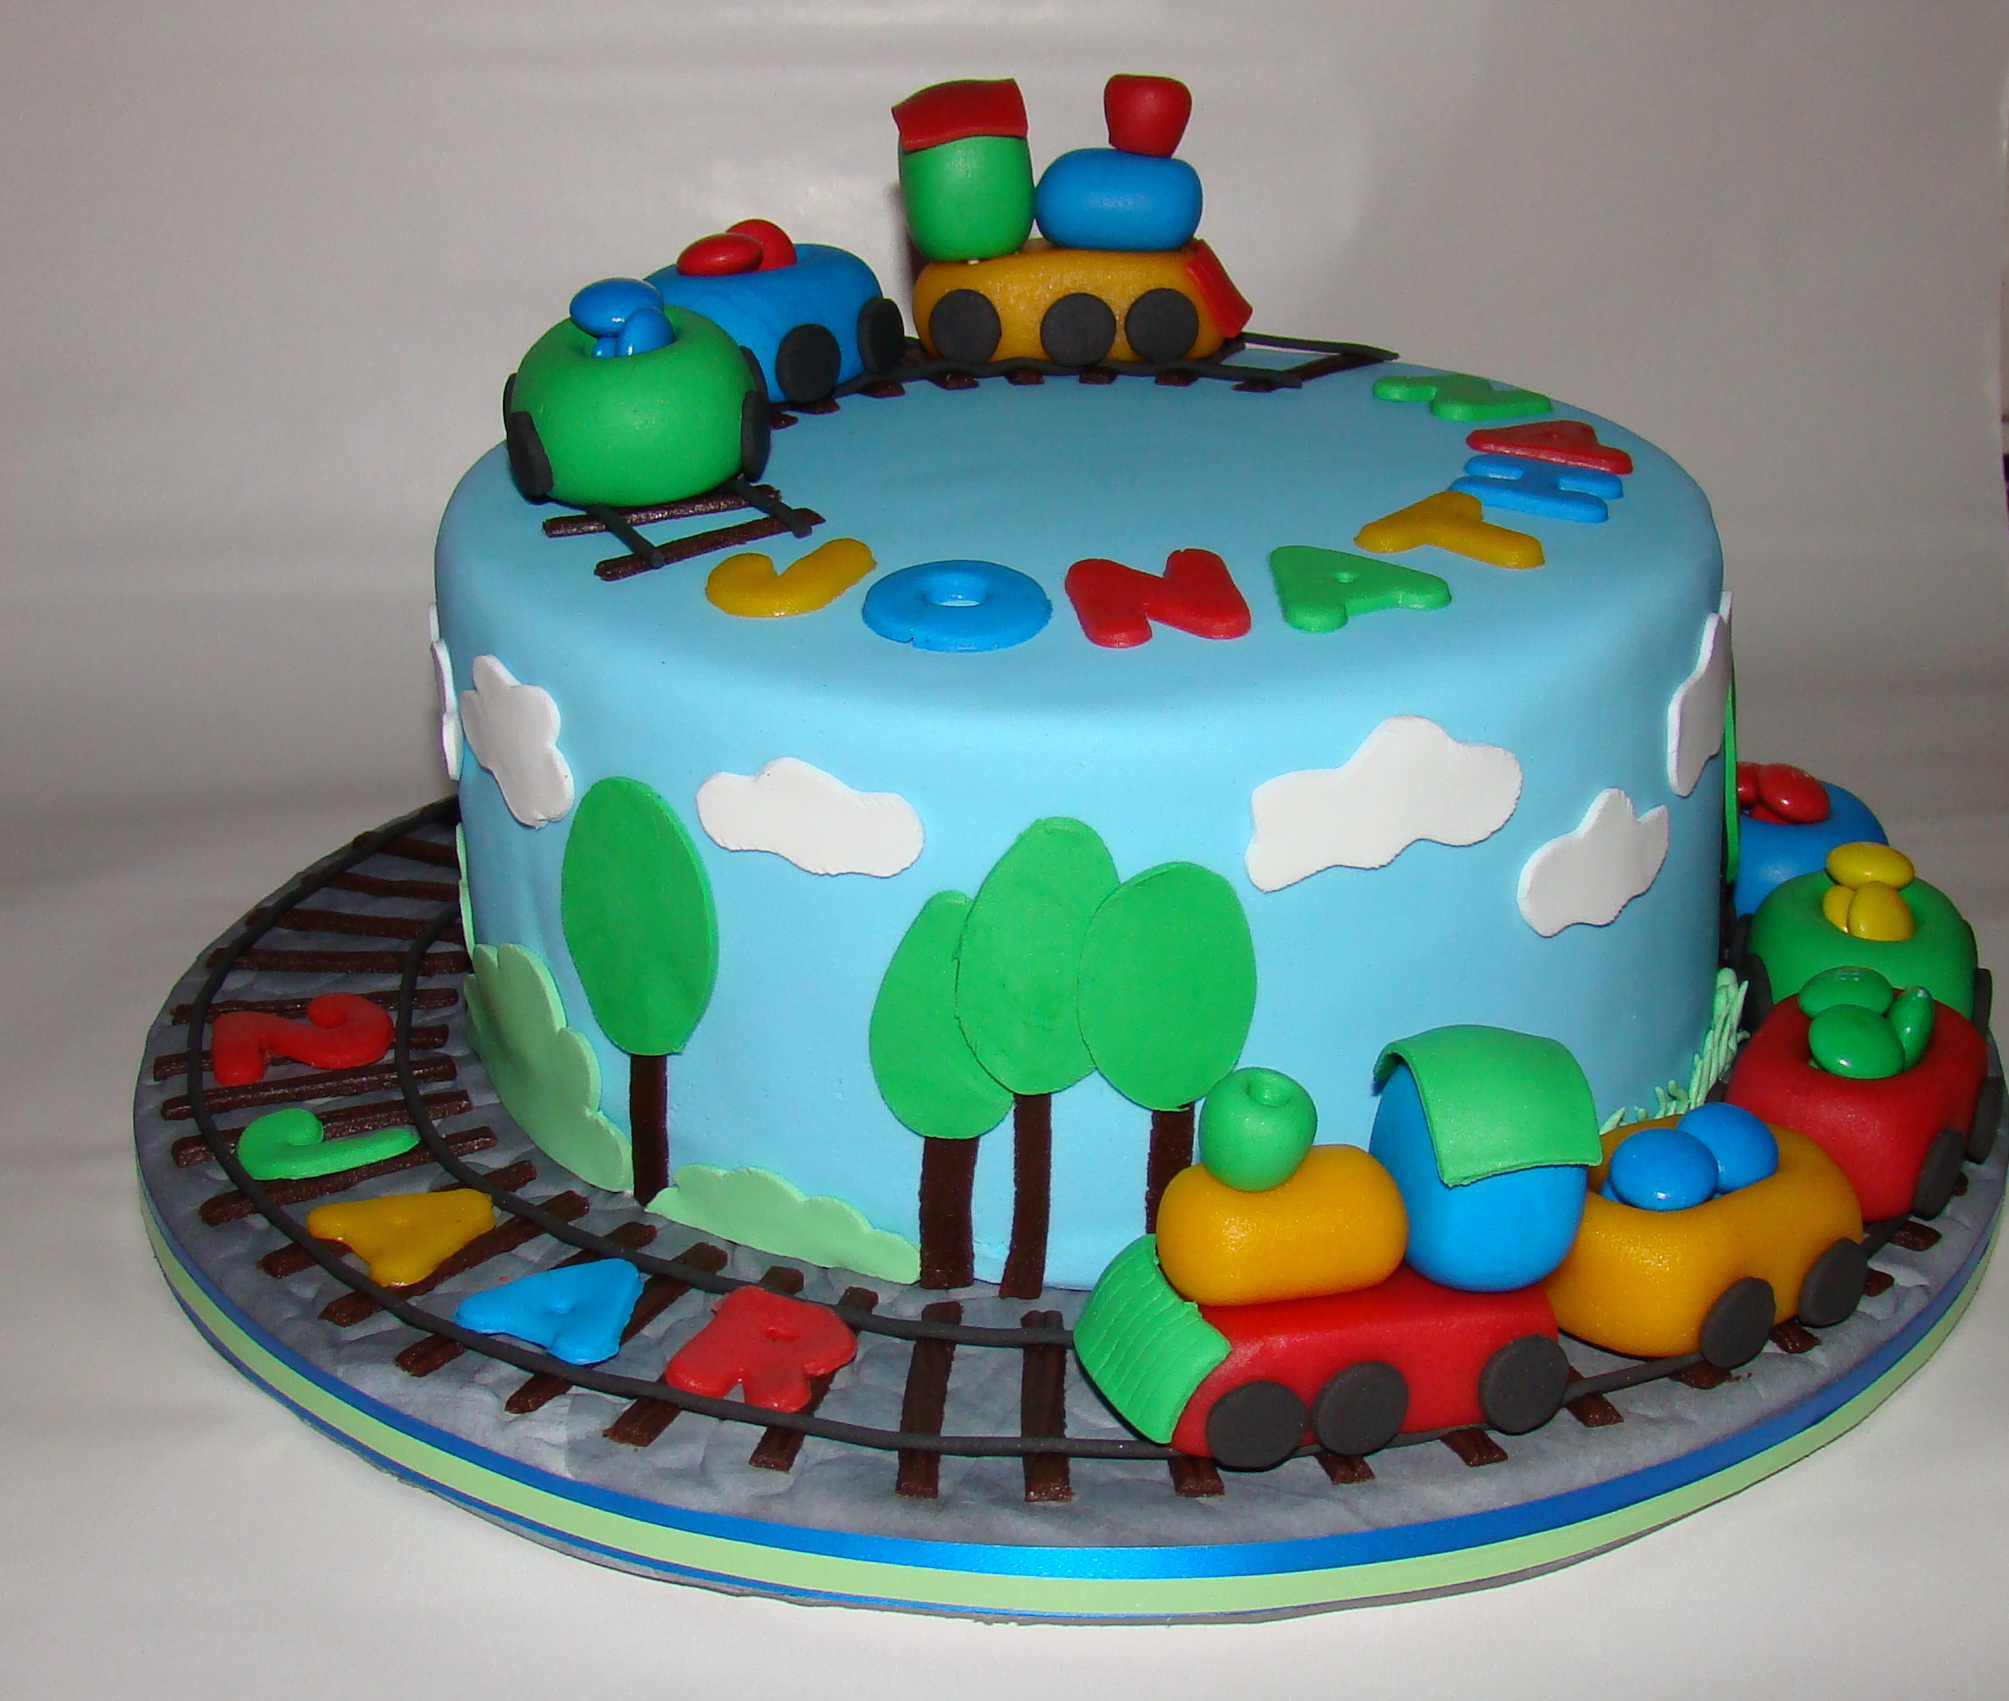 Traincake For A Two Years Old Boy - CakeCentral.com